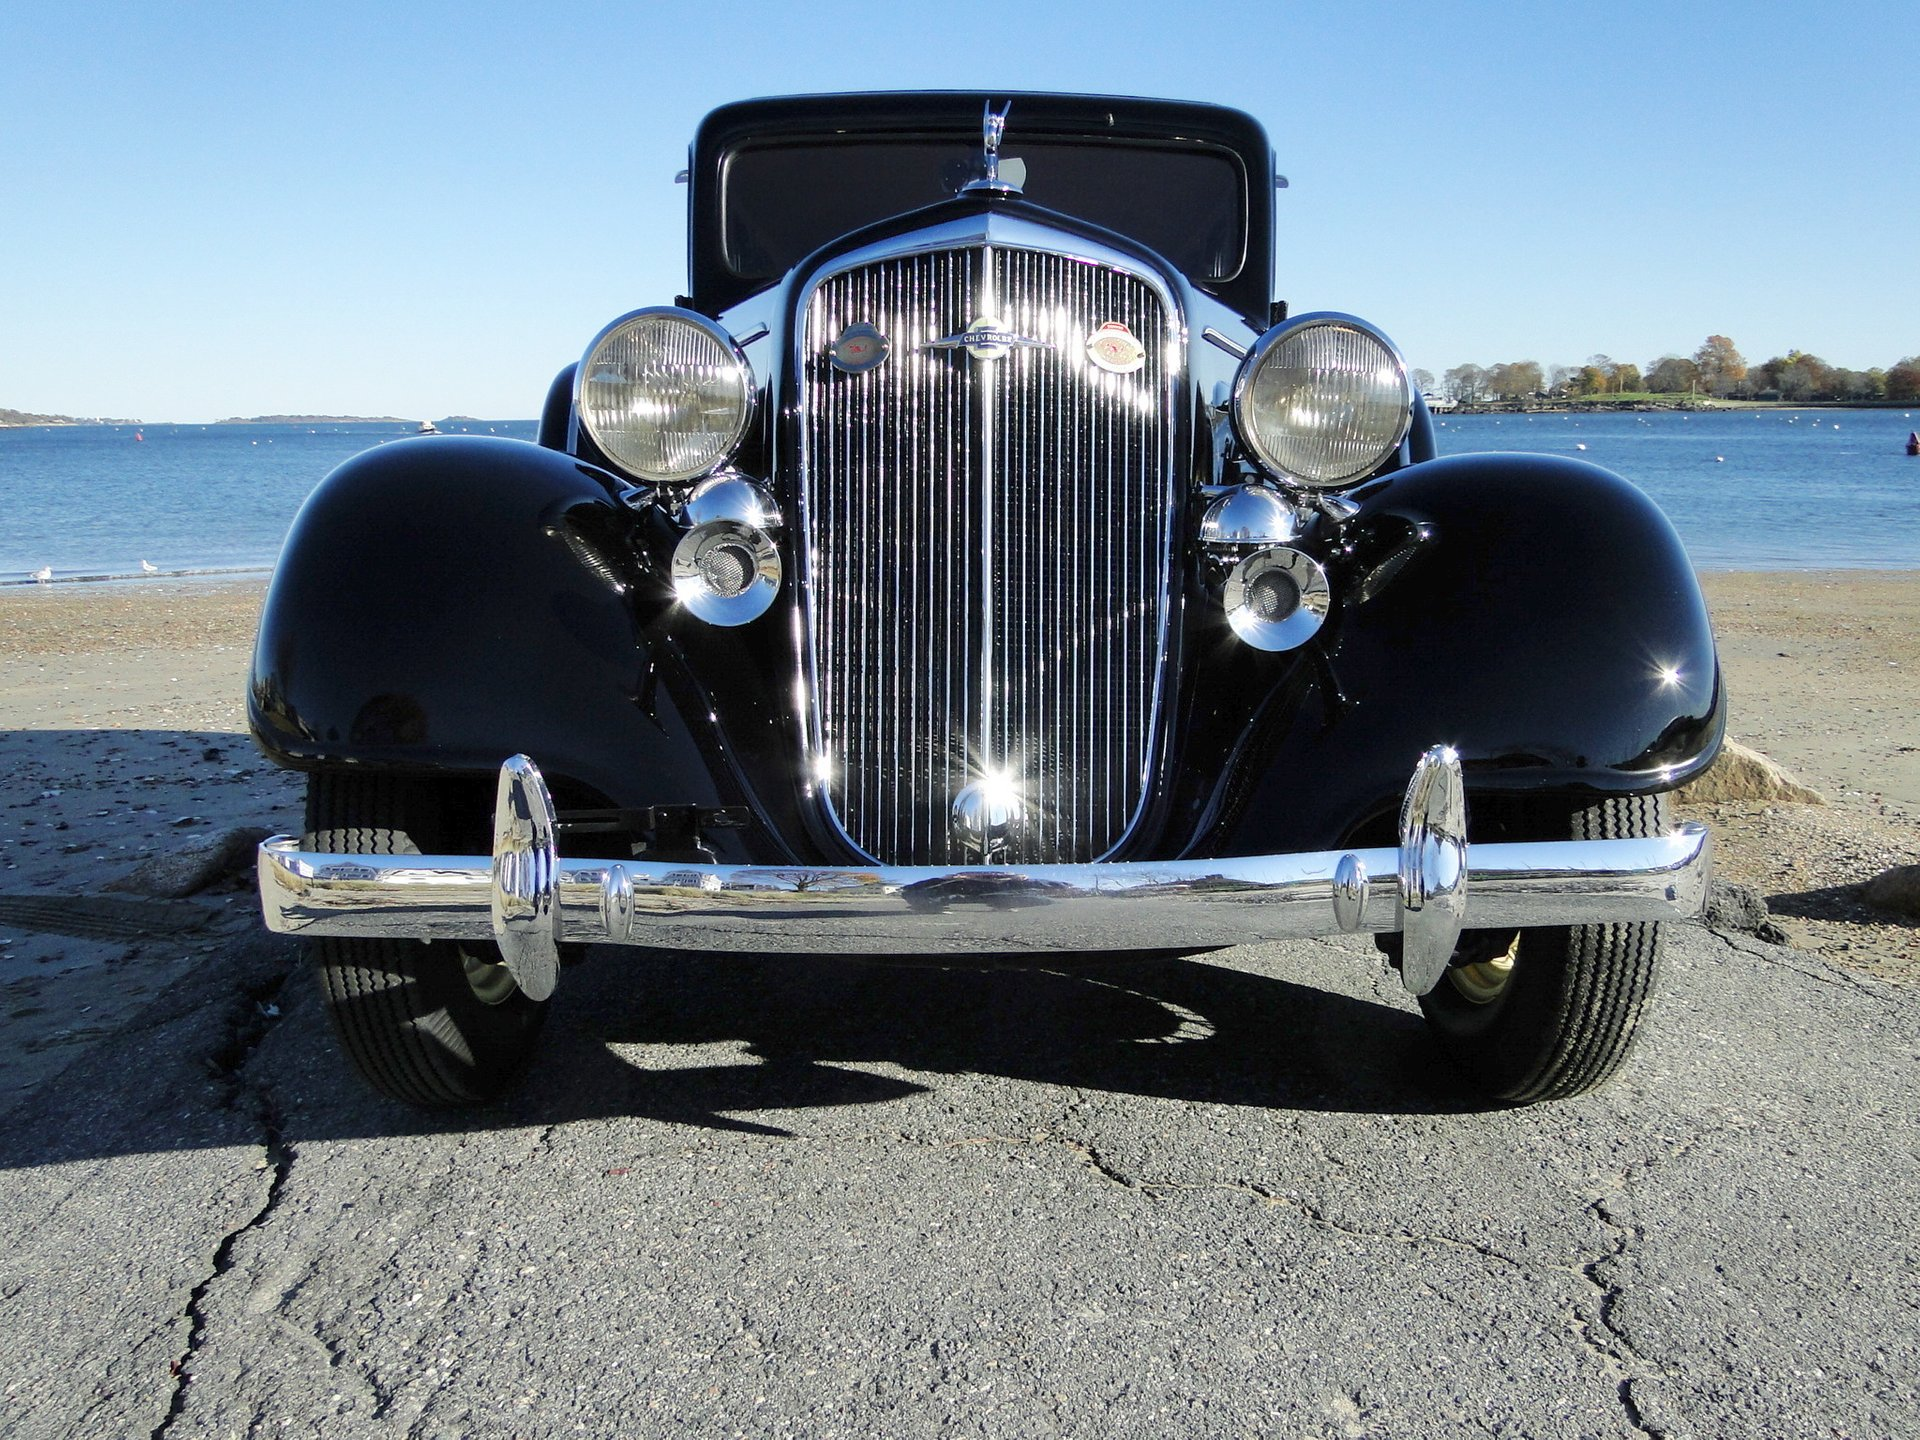 1934 Chevrolet Master | Legendary Motors - Classic Cars, Muscle Cars